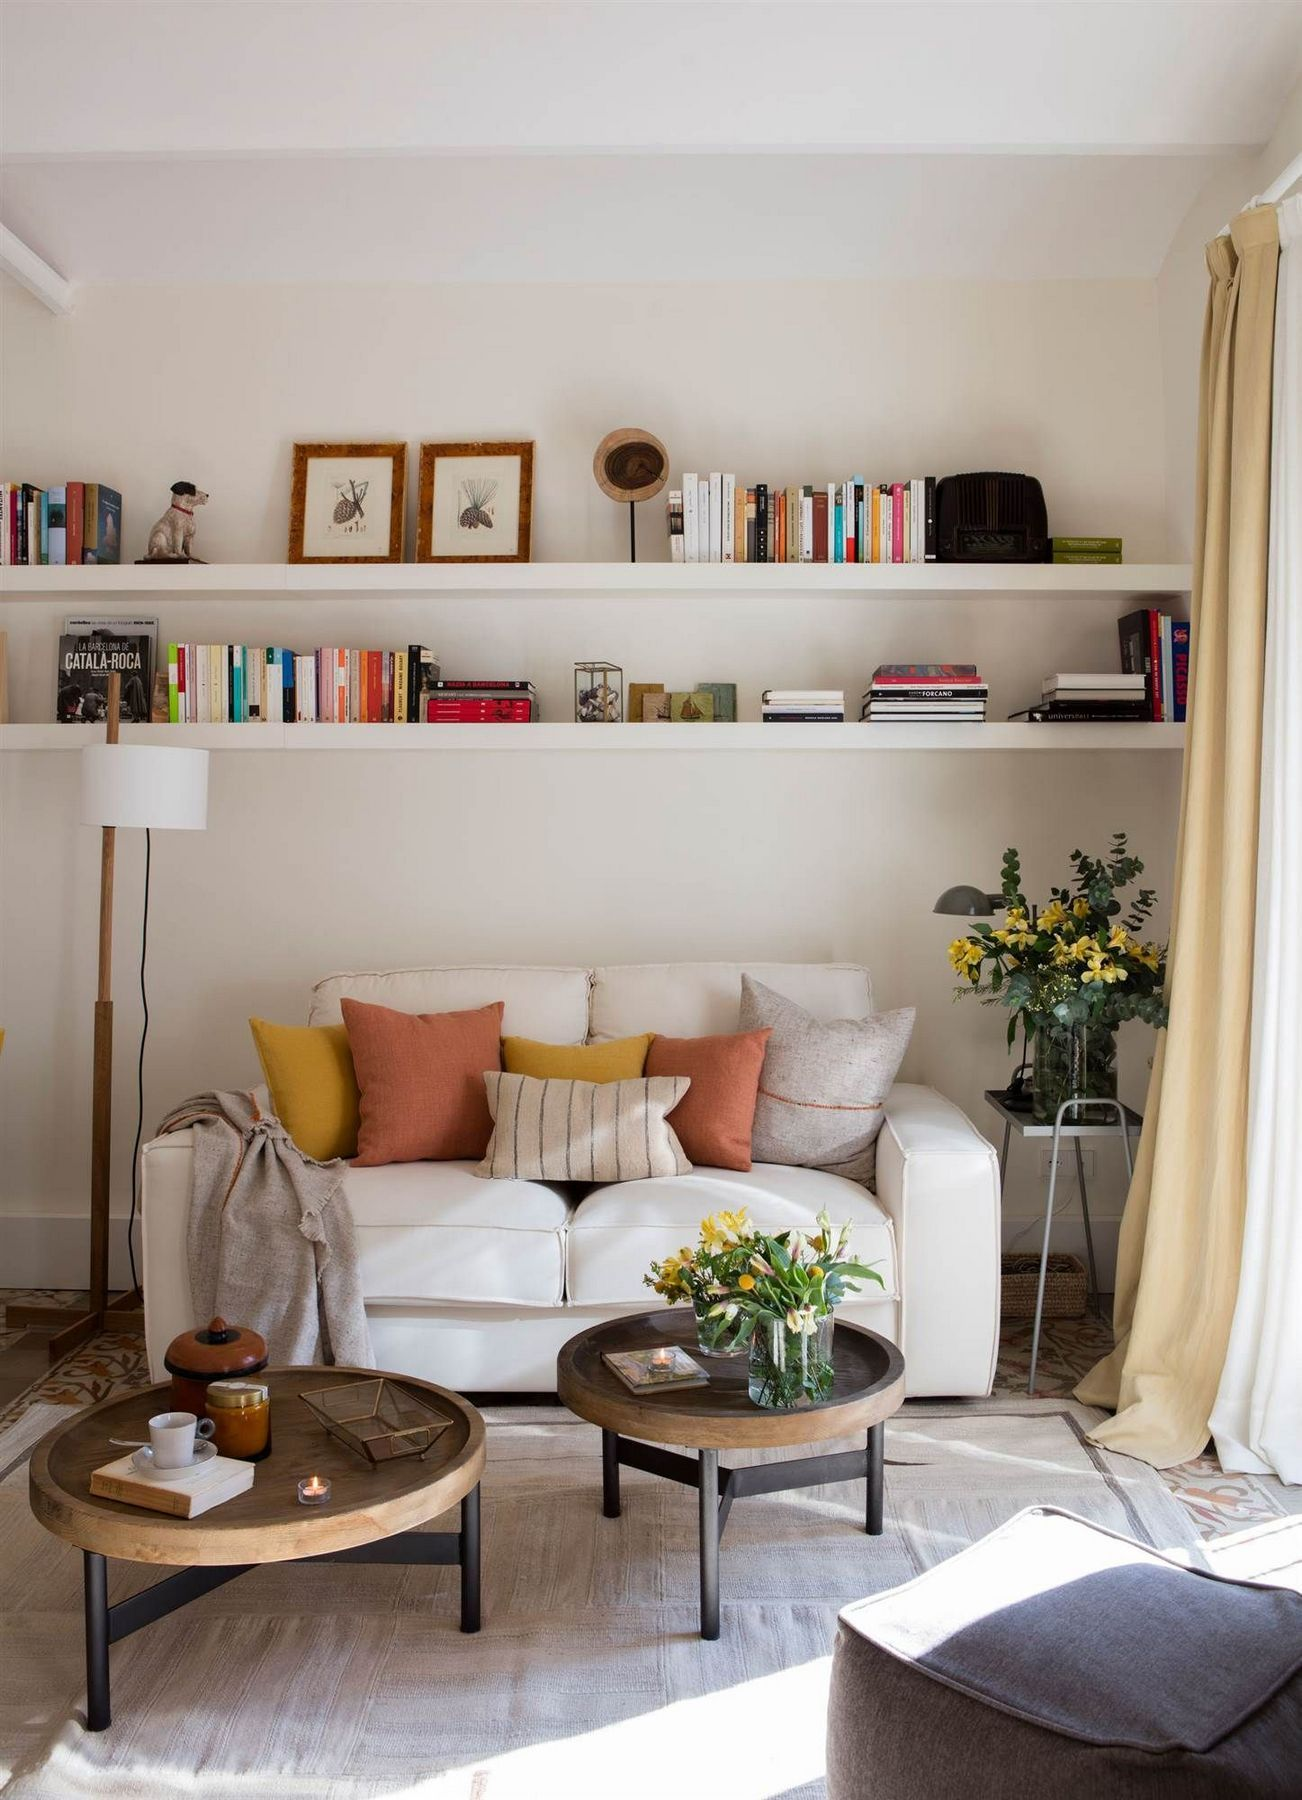 20 Ideas To Simple Apartment Decor Living Room Small Spaces Couch 78 Myhomestyleguide Com Small Apartment Living Room Small Living Room Decor Small Living Rooms #simple #decor #for #small #living #room